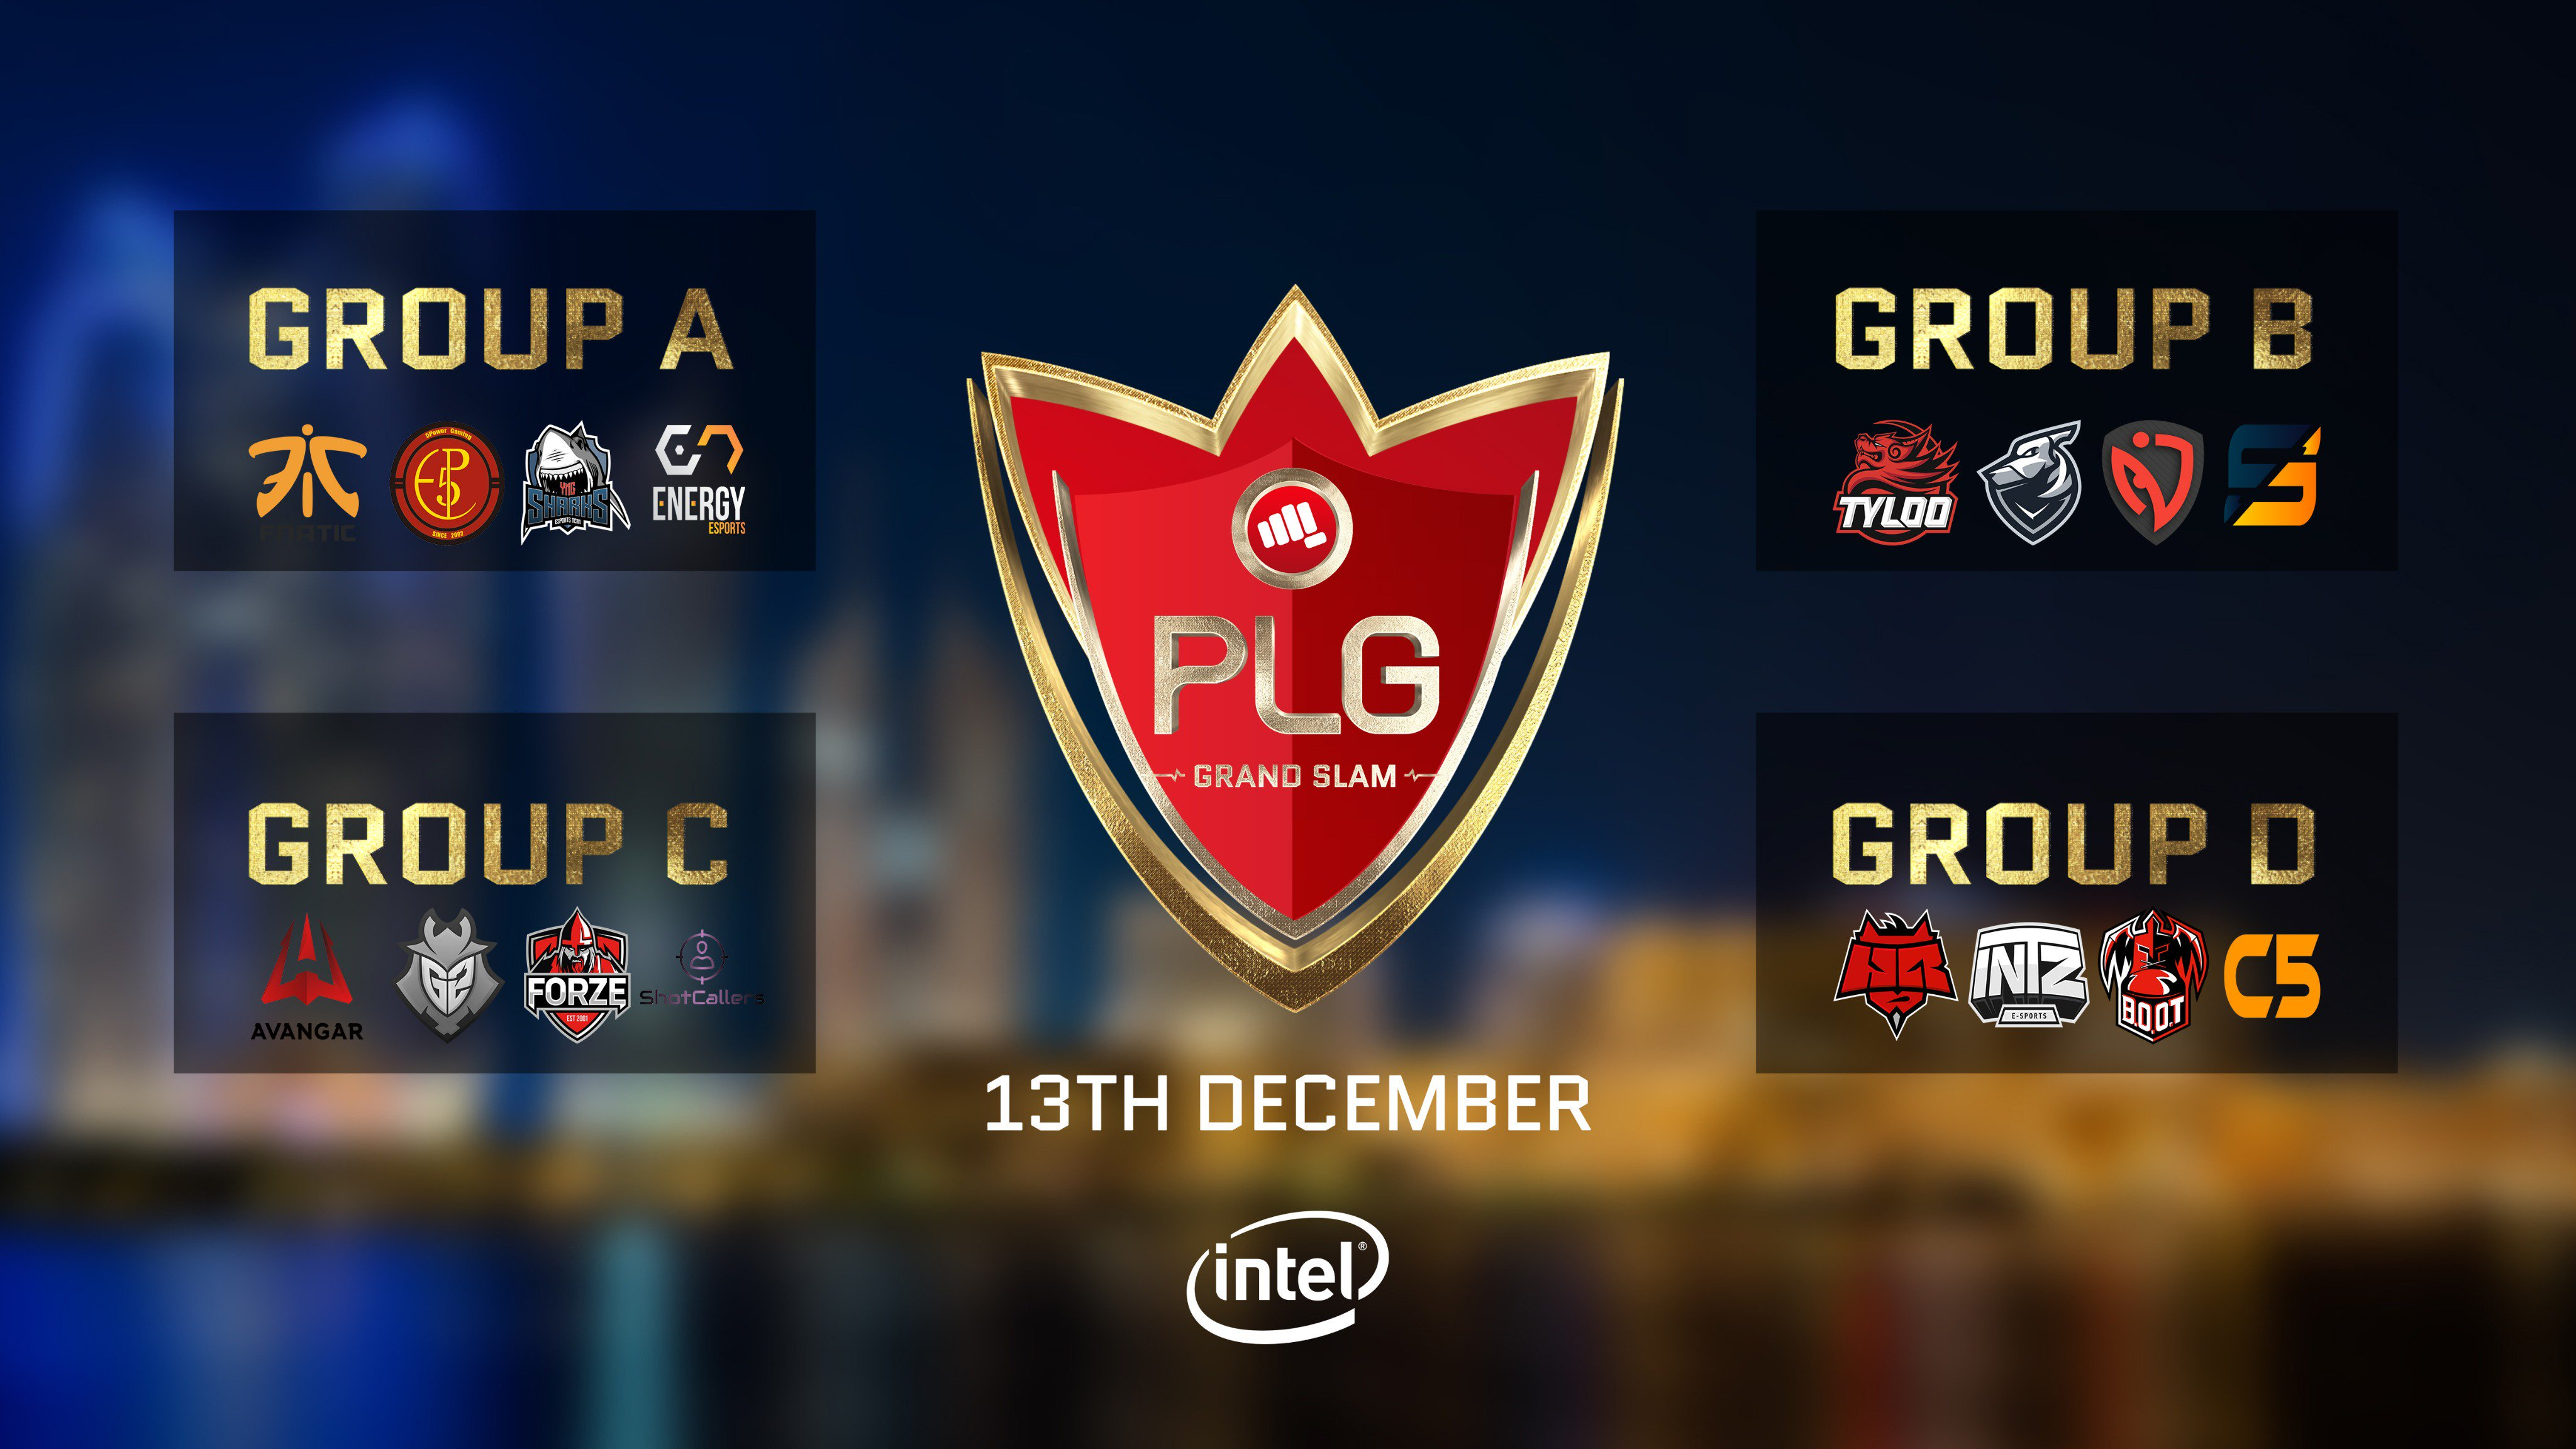 PLG Grand Slam Day 1 delayed by several hours, Matches to be played offline.